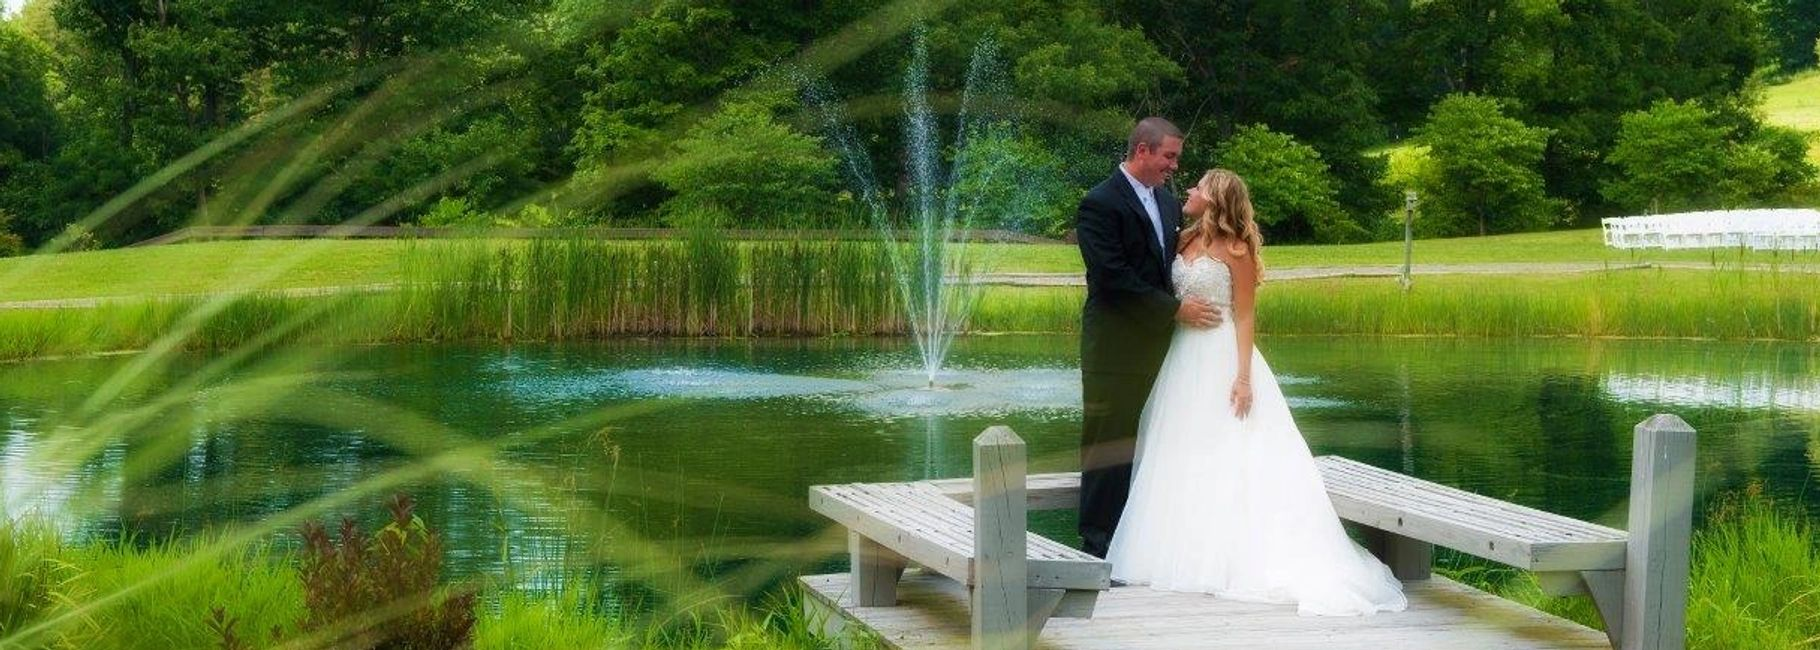 a bride and groom looking over our vineyard pond